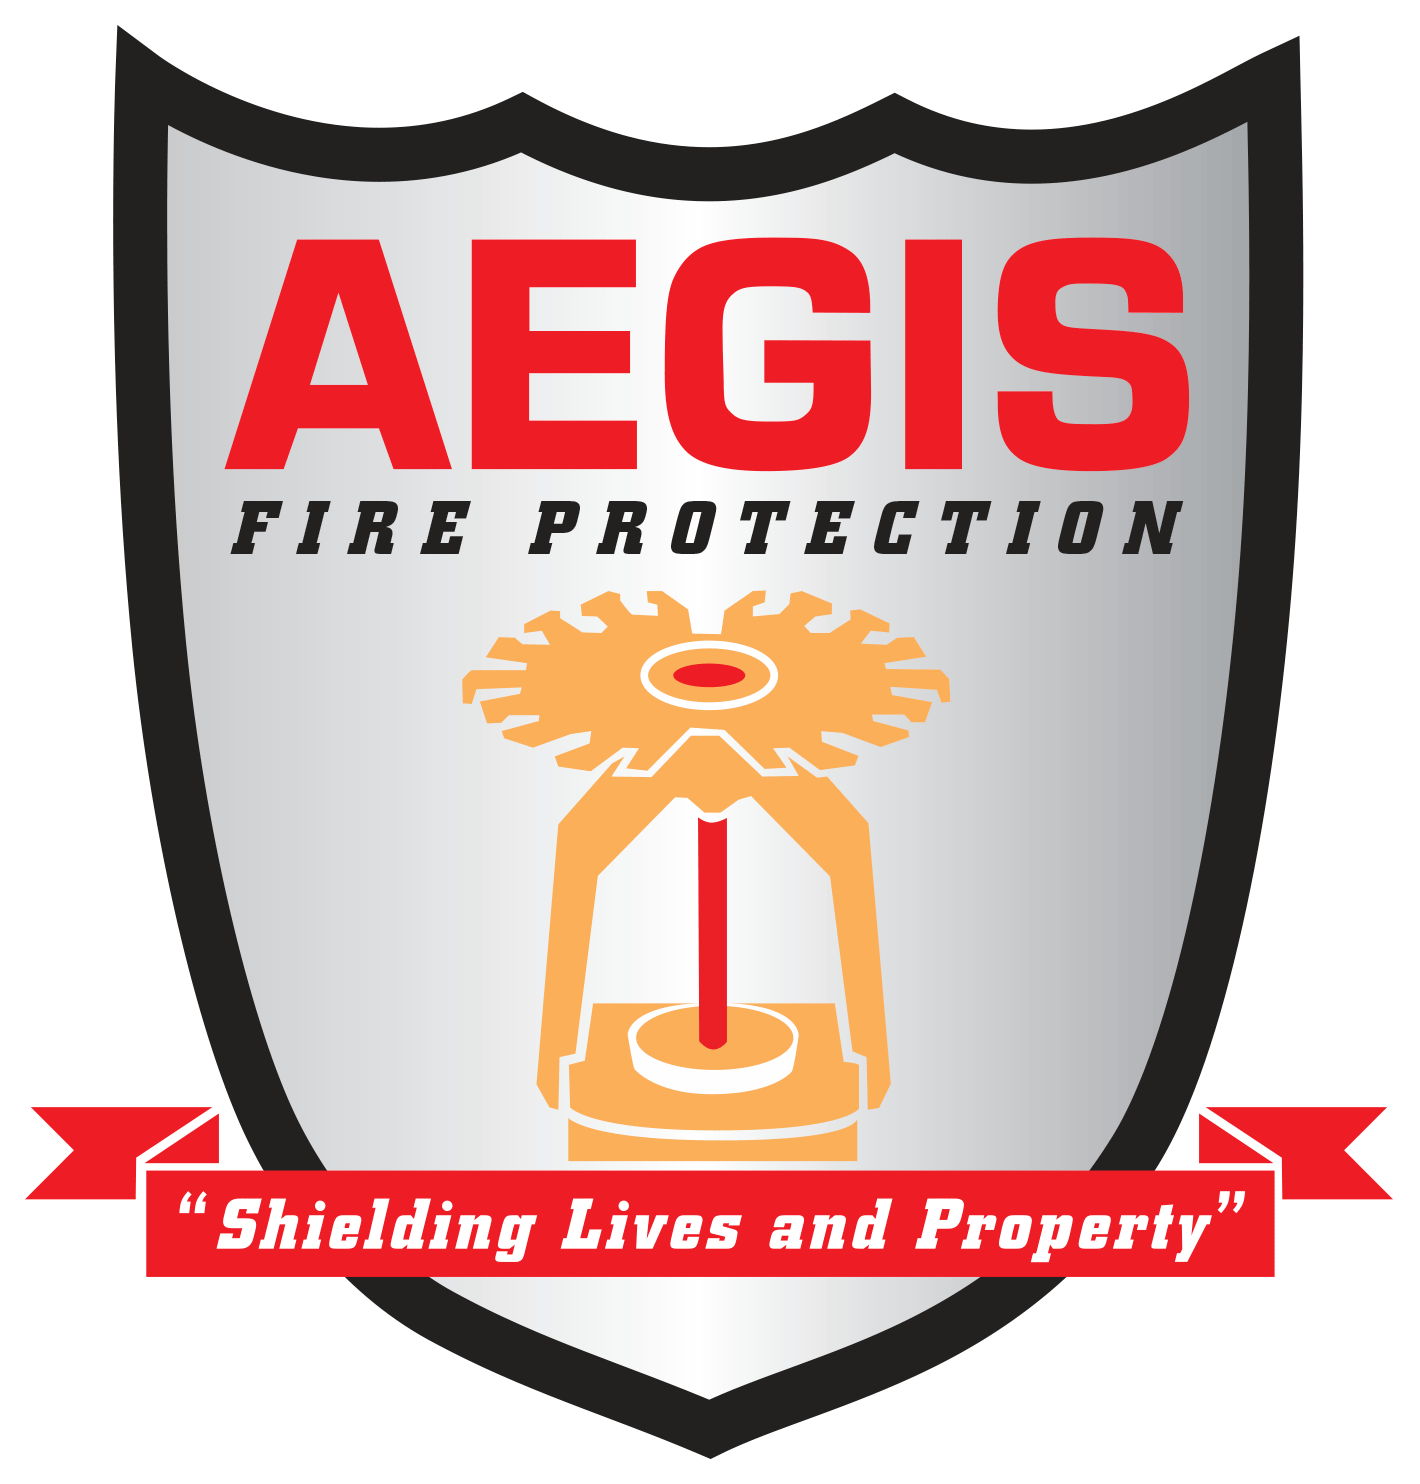 Aegis Fire Protection